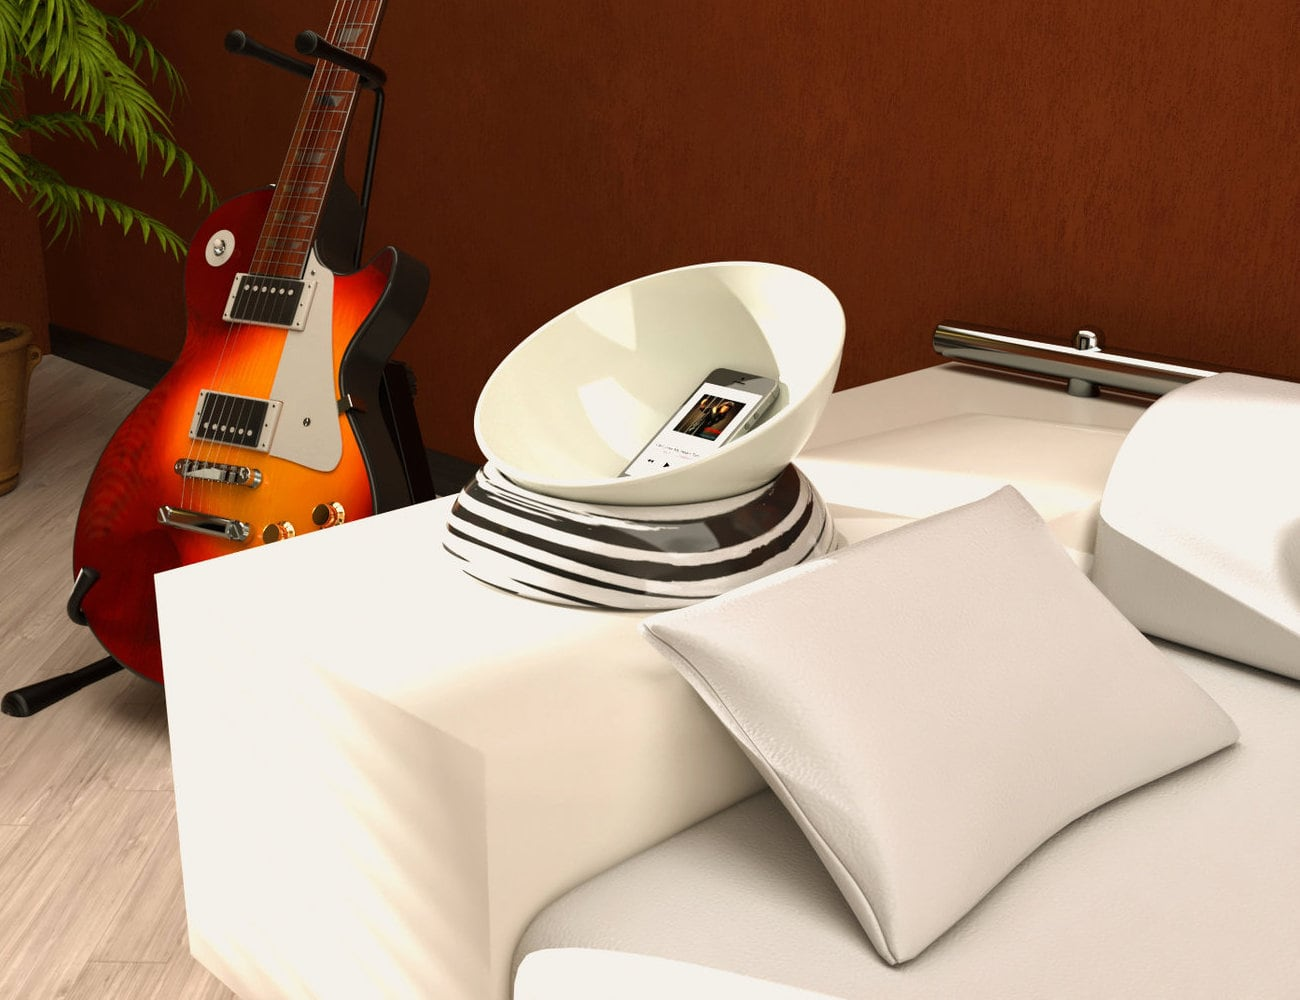 Wave Live Ceramic Acoustic Amplifier is great for parties and small get-togethers